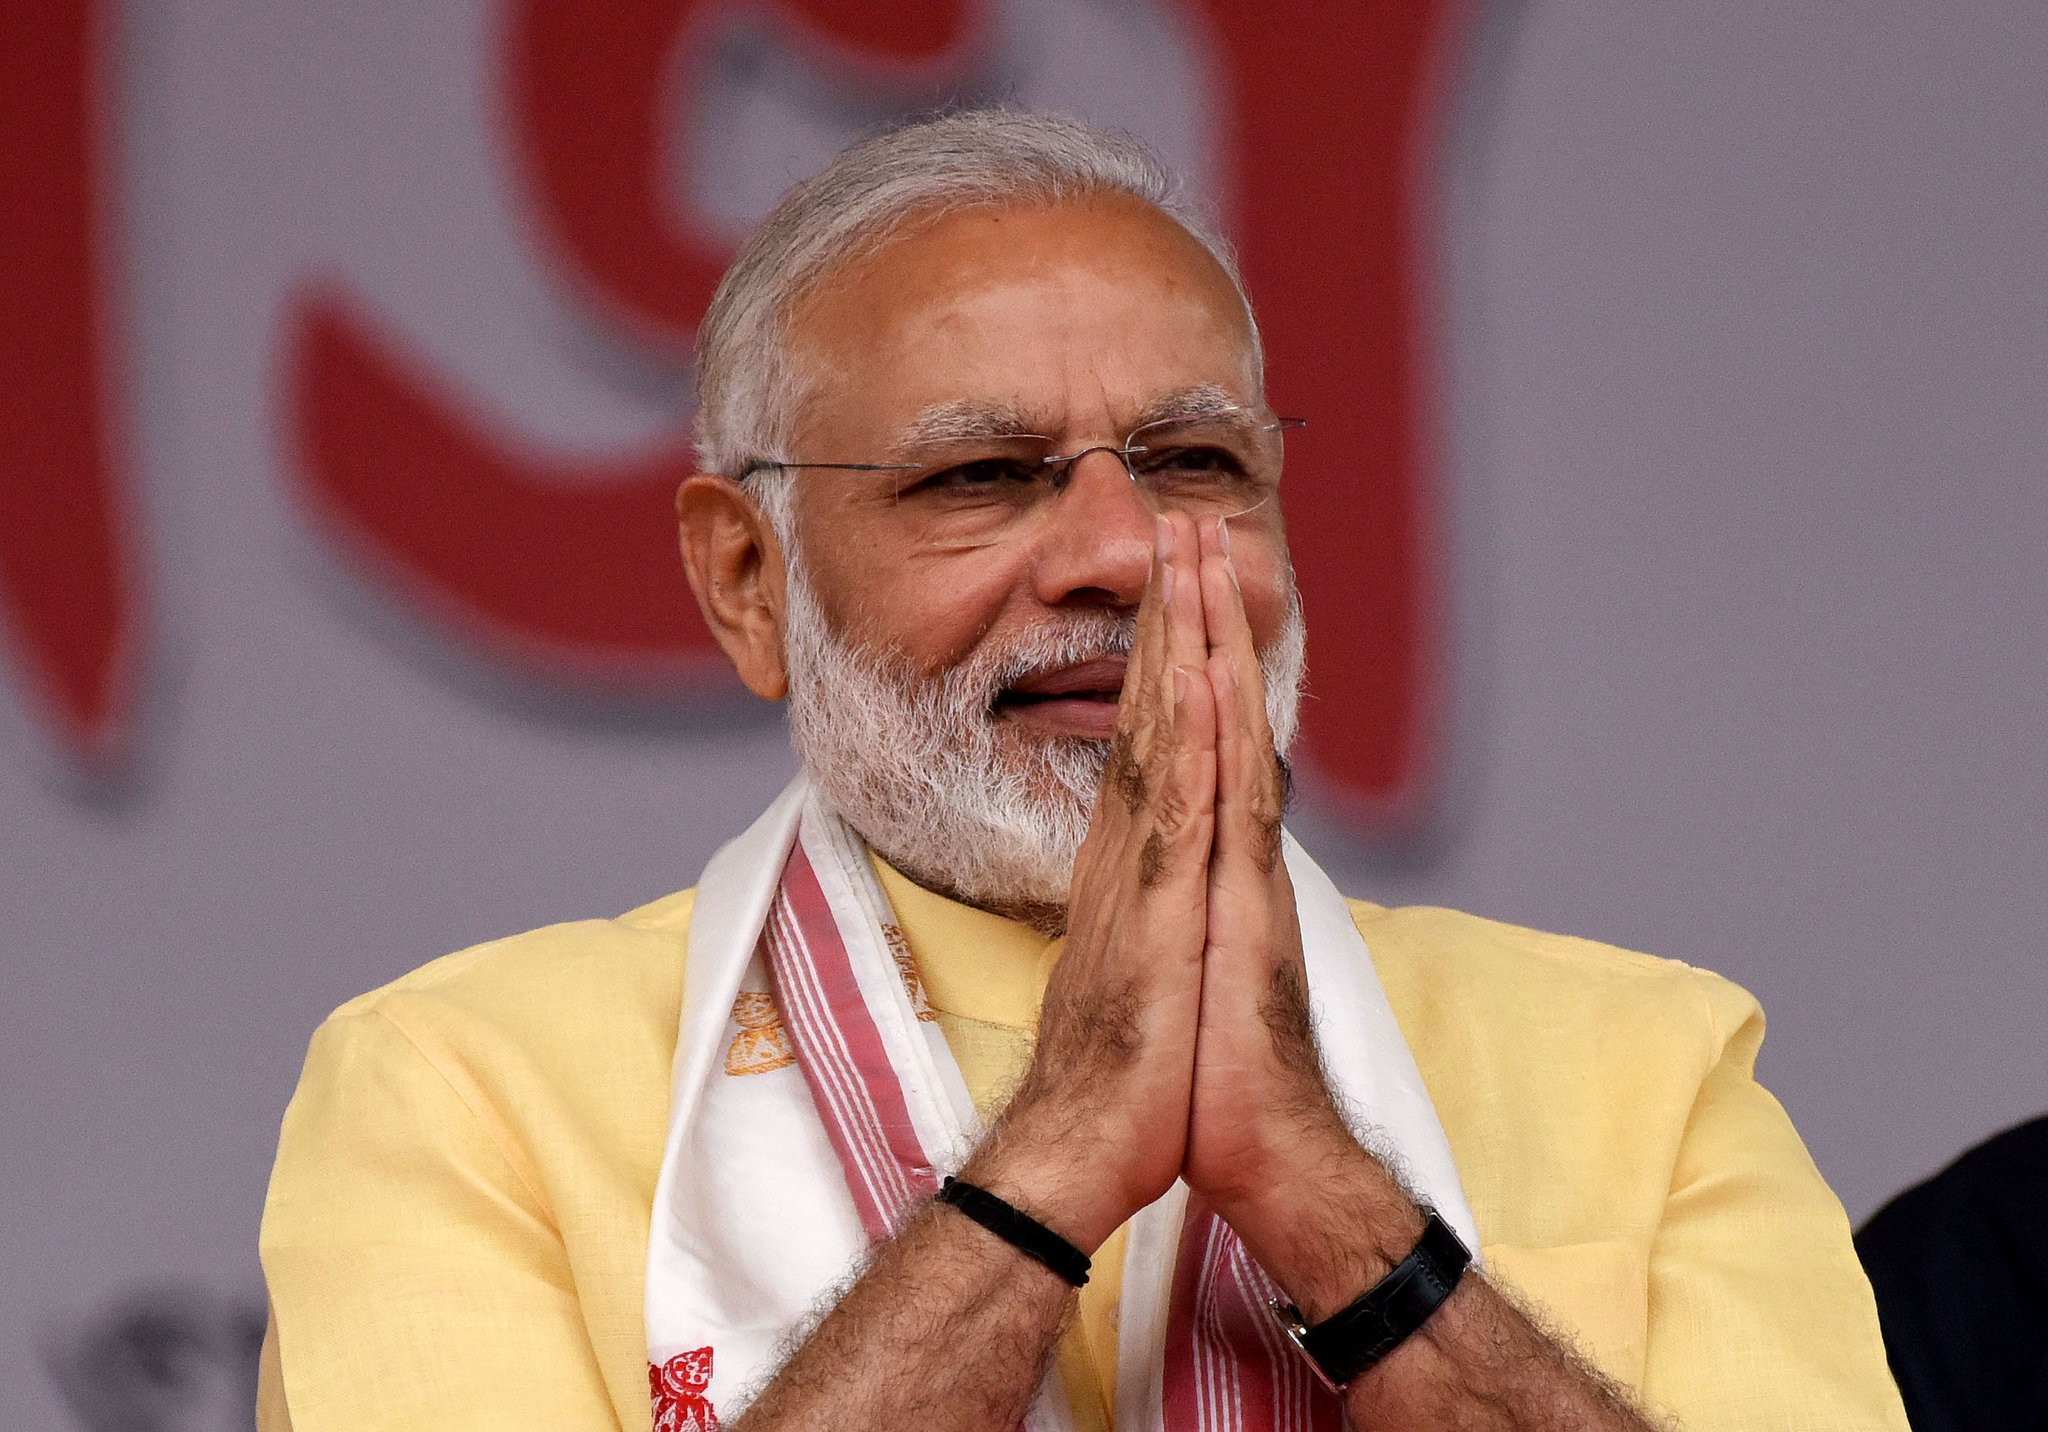 Opinion | Why reforms undertaken by Modi's India are not an illusion https://t.co/T6jGg8GkDL https://t.co/BVJq9OAYsU